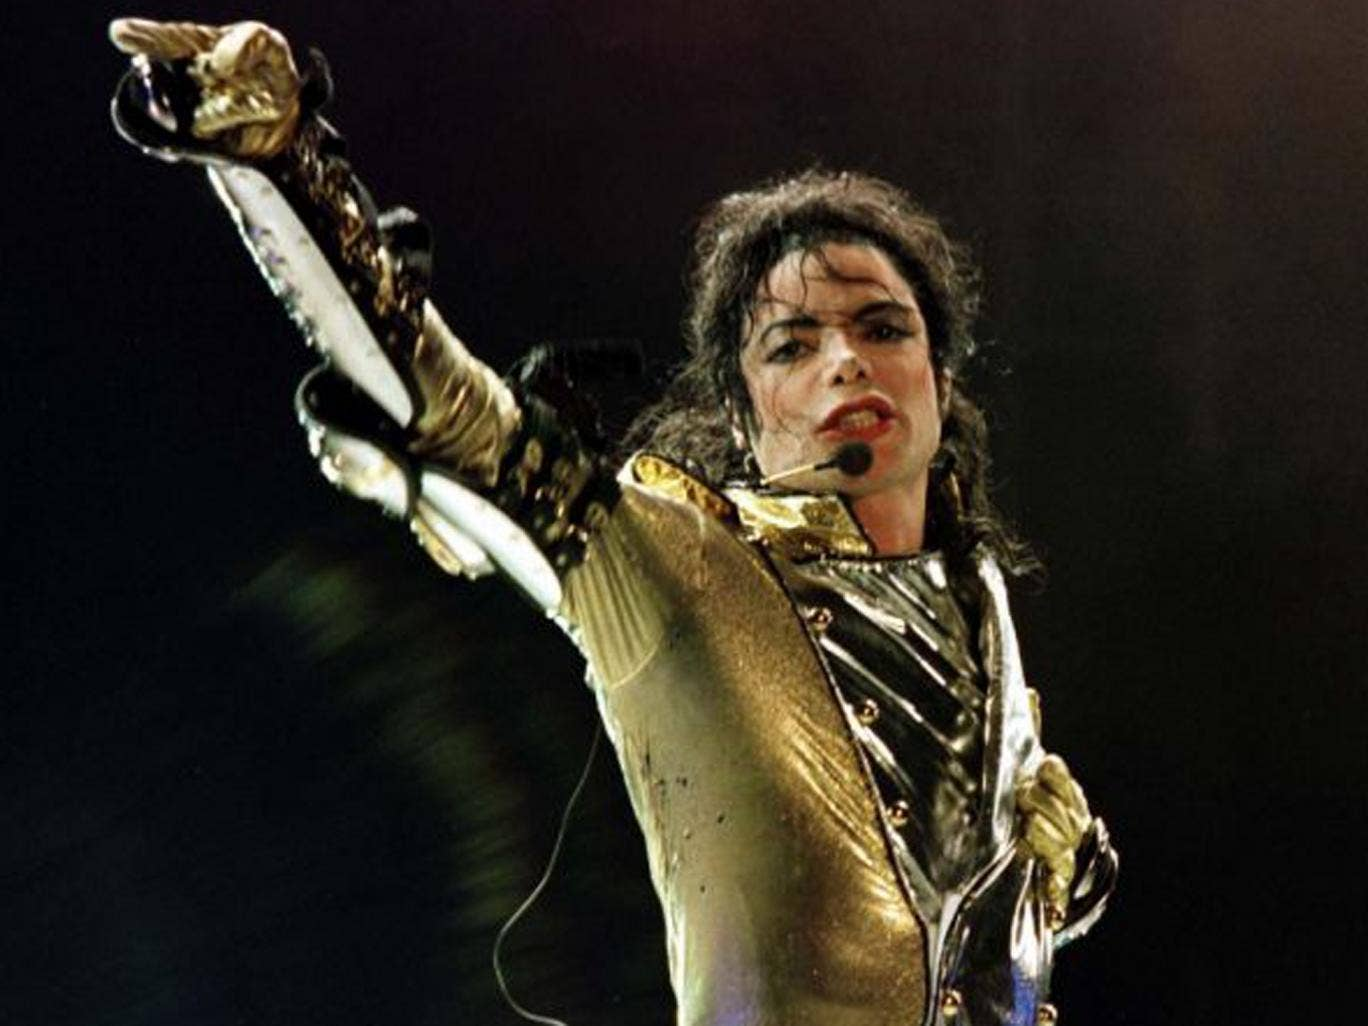 Michael Jackson performing during his HIStory World Tour. The Jackson family is reportedly suing AEG LIve for $40bn in damages